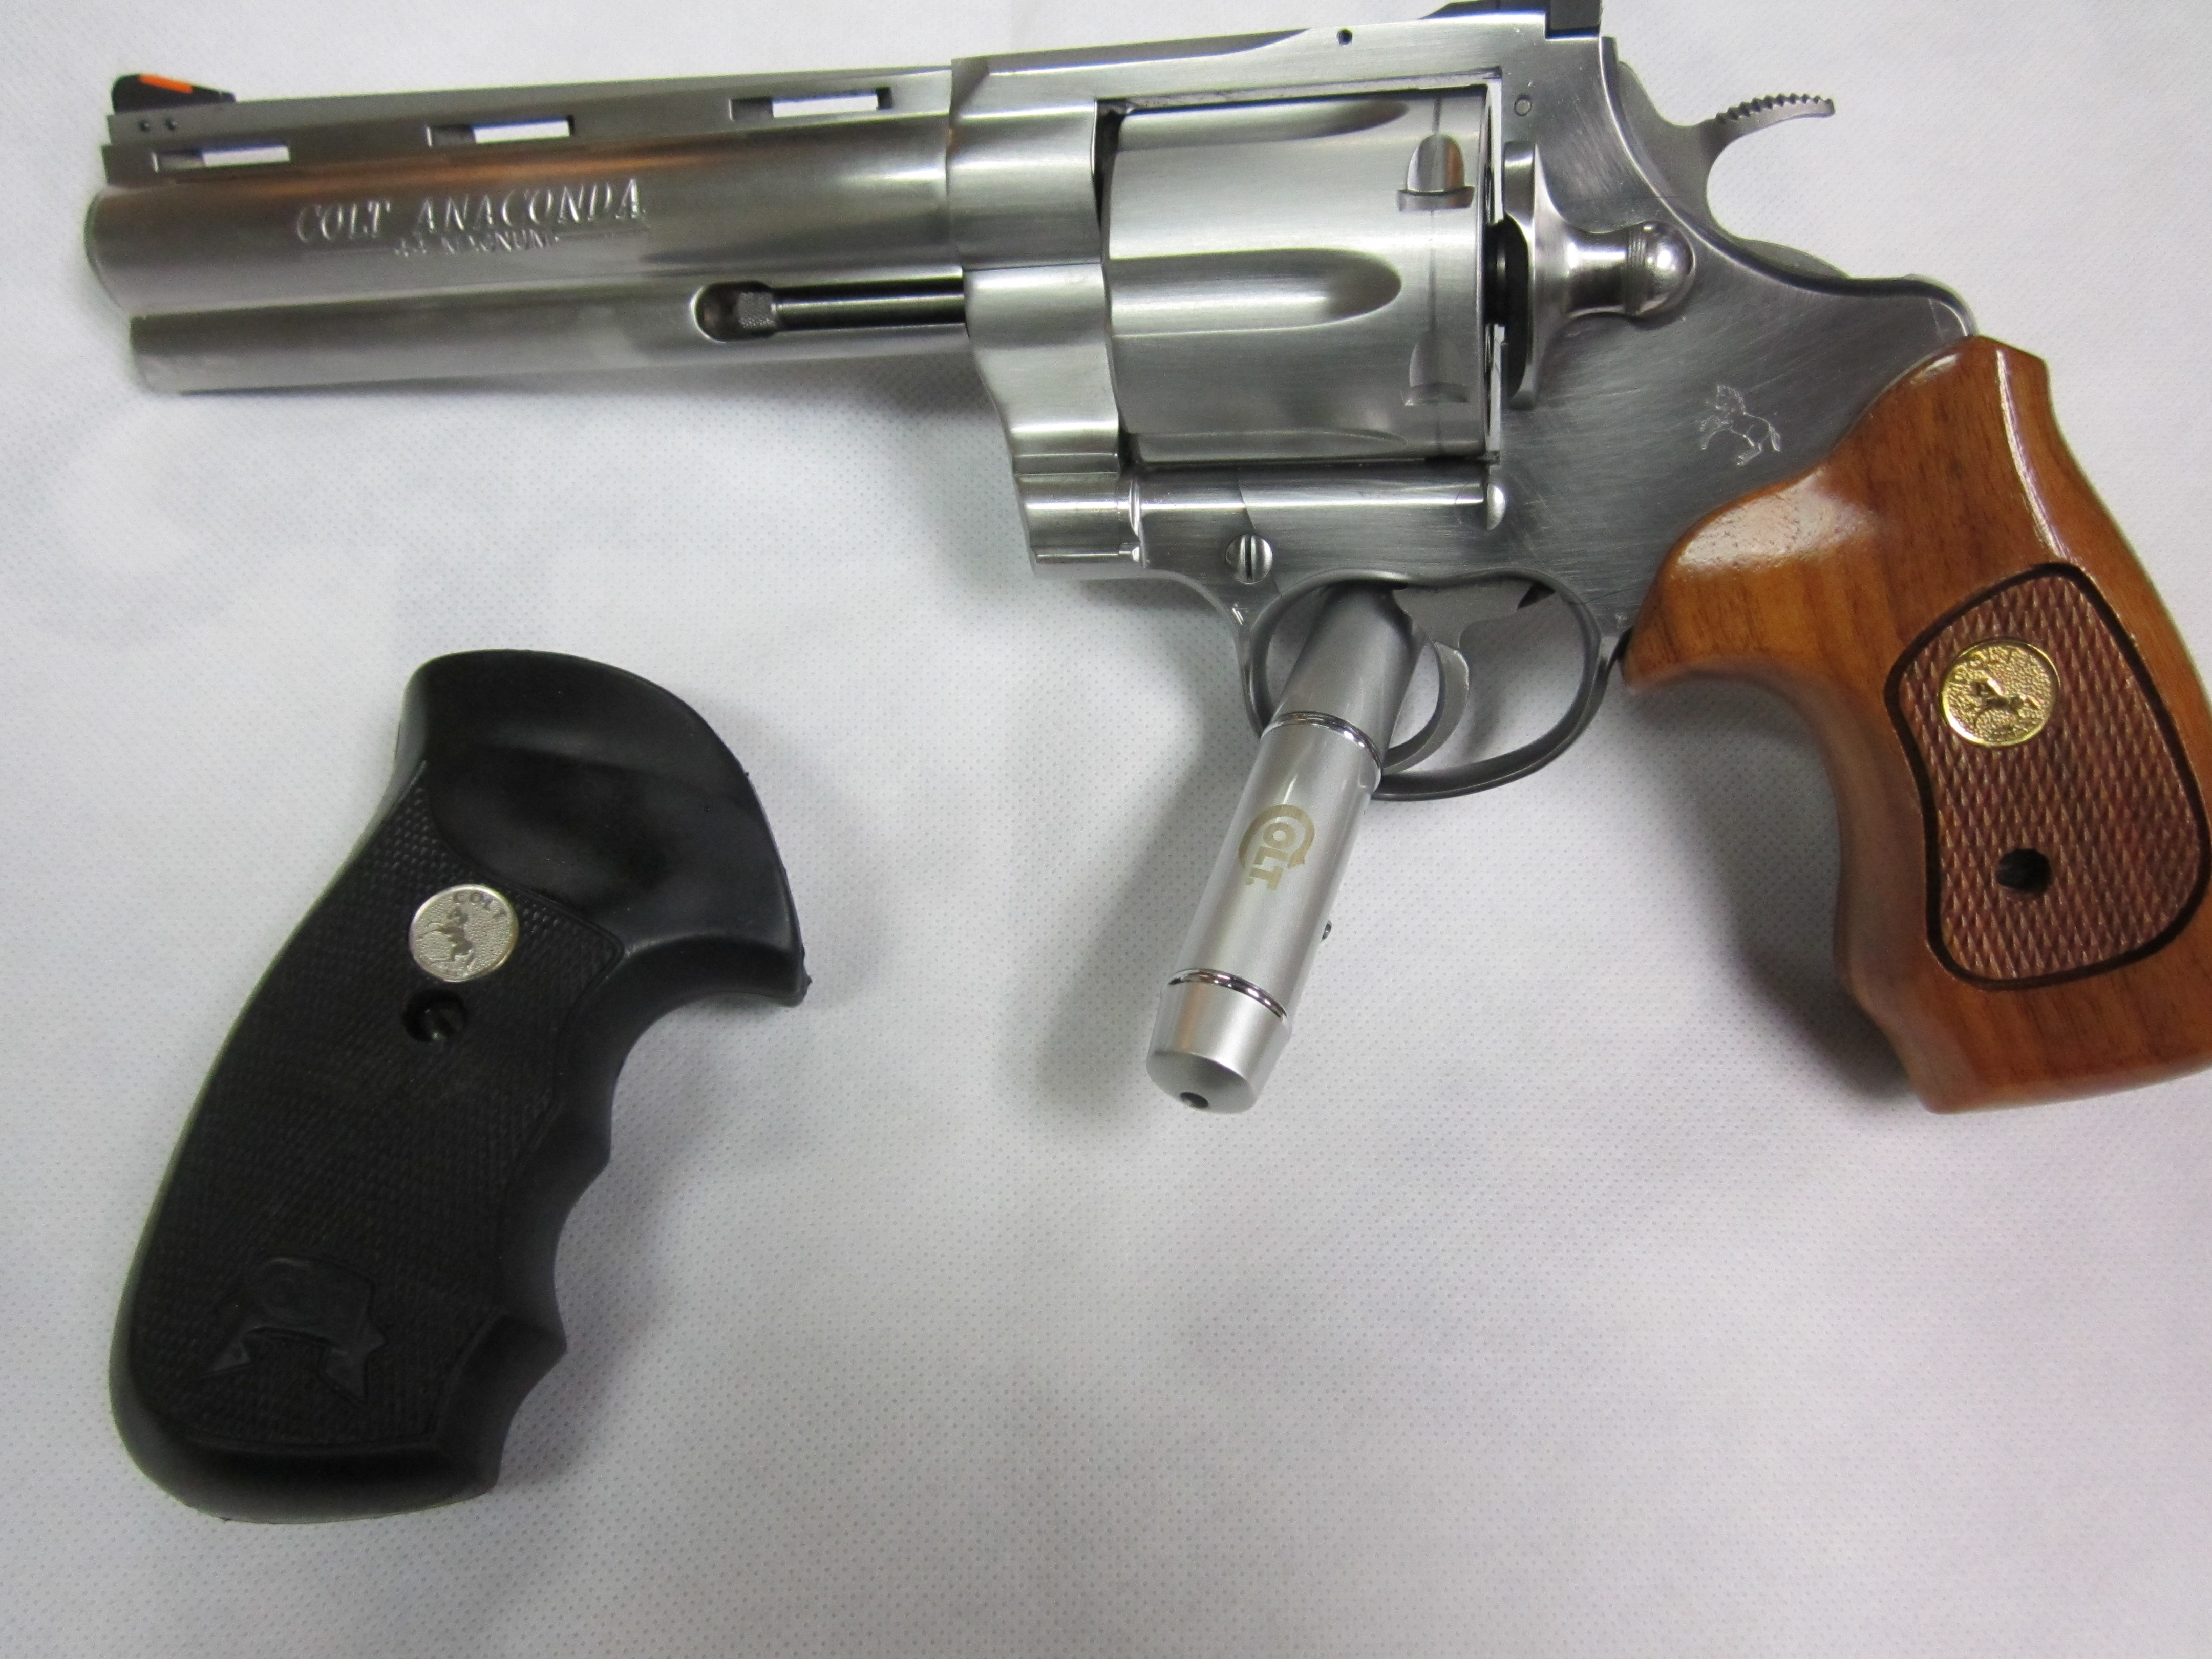 Any interest in a Colt Anaconda  44 Magnum? Minty condition!